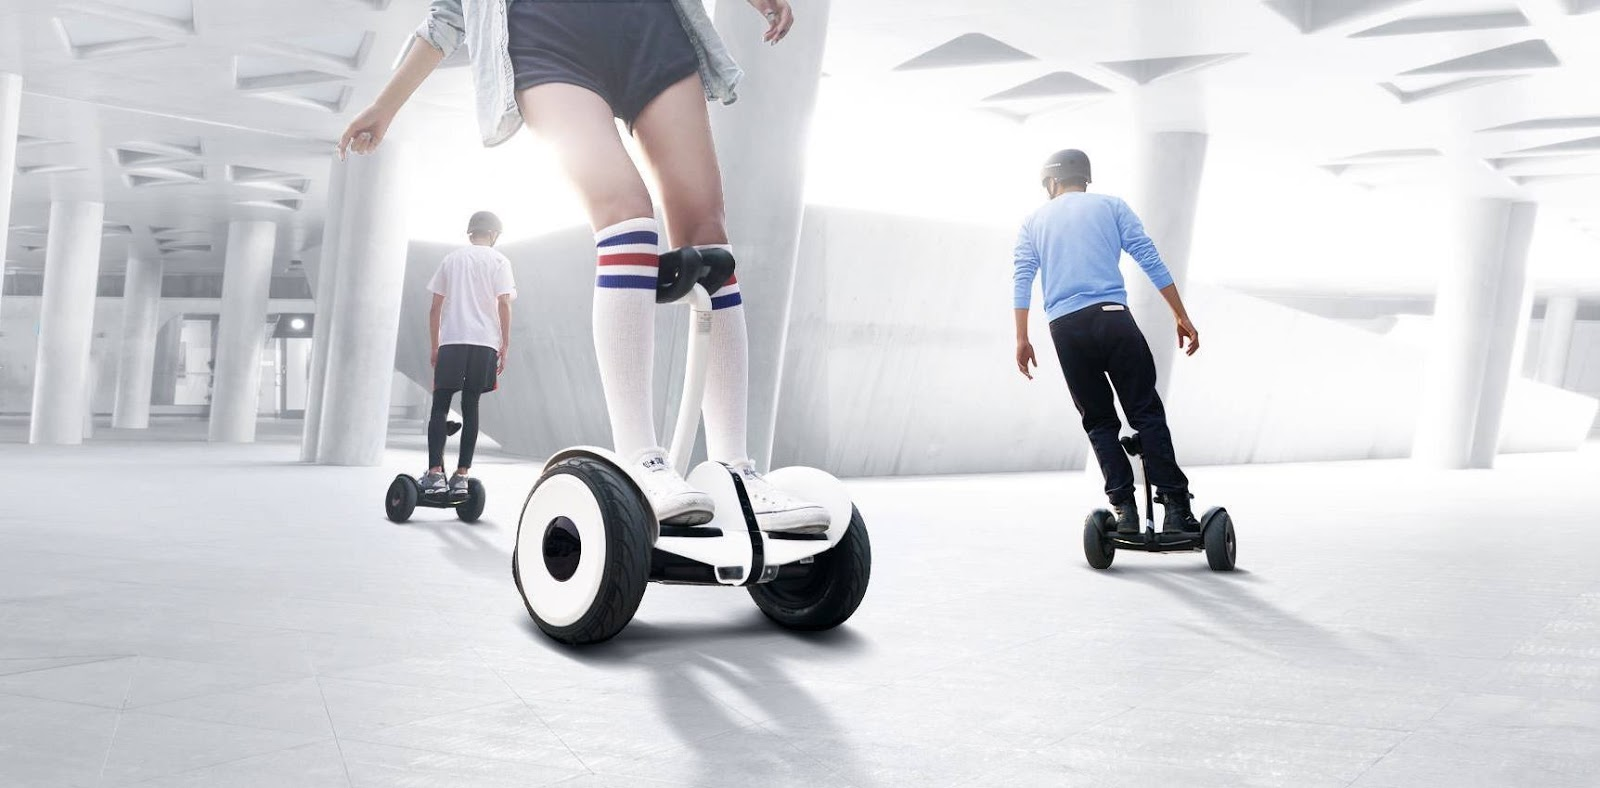 http://gyroskuter.ru/images/upload/Xiaomi-hoverboard-made-with-Ninebot-and-Segway-photo-1.jpg